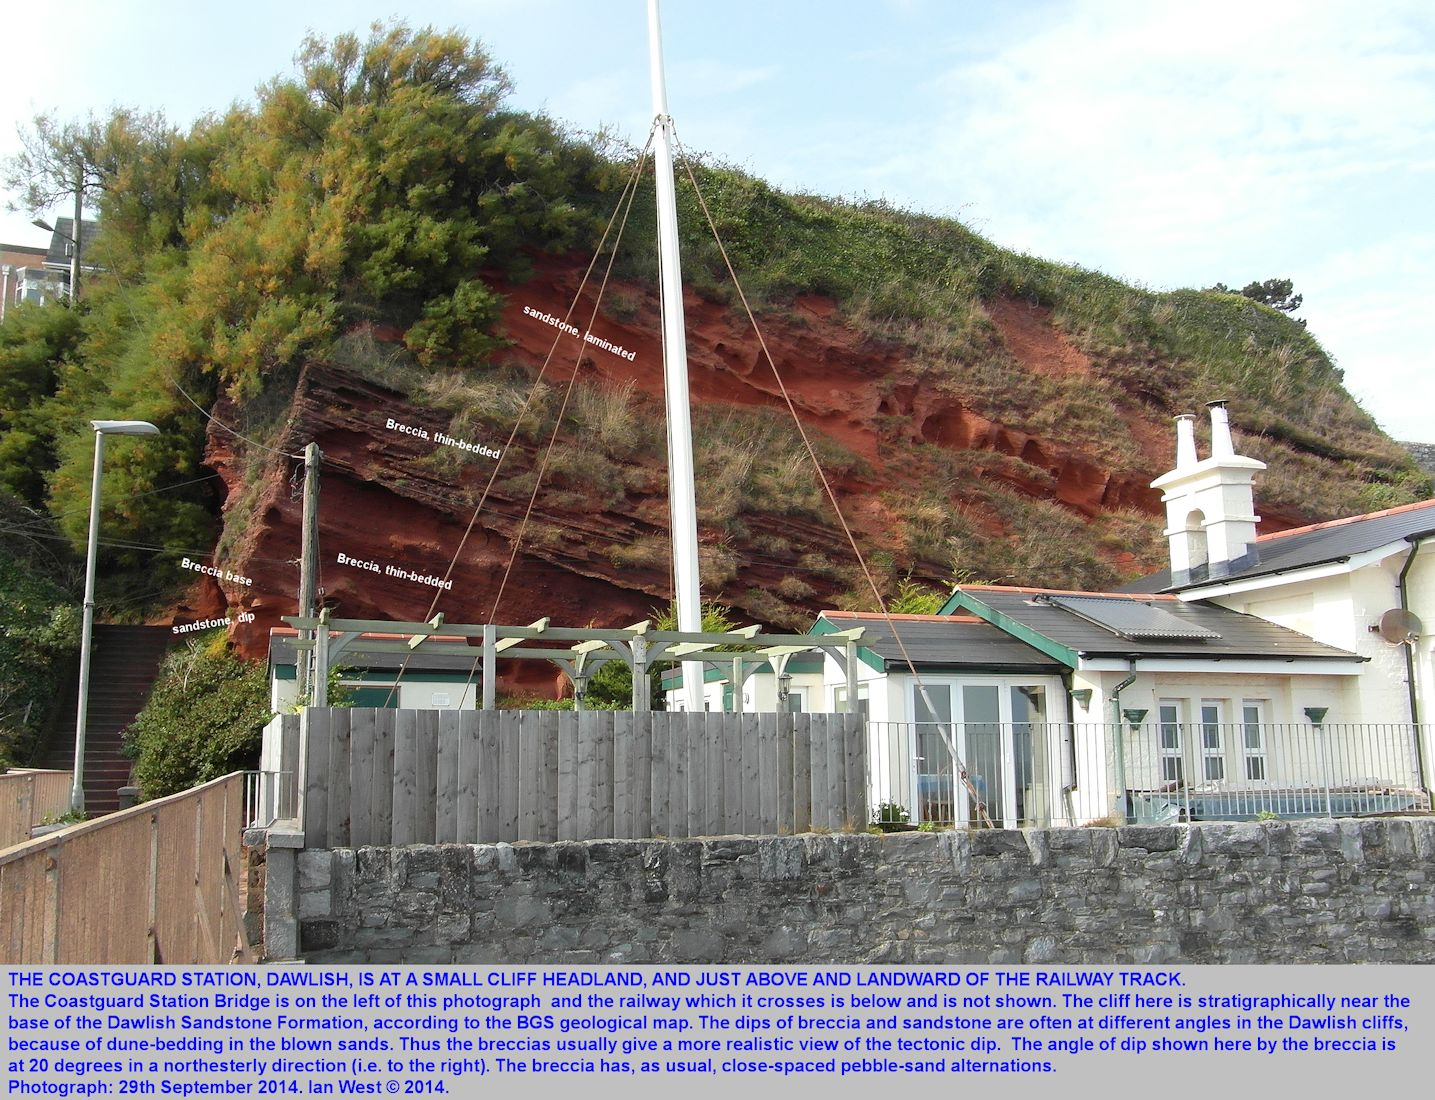 Northeasterly dipping breccia and sandstone of the Permian, Dawlish Sandstone Formation at the Coastguard Station, Dawlish, Devon, 29th September 2014